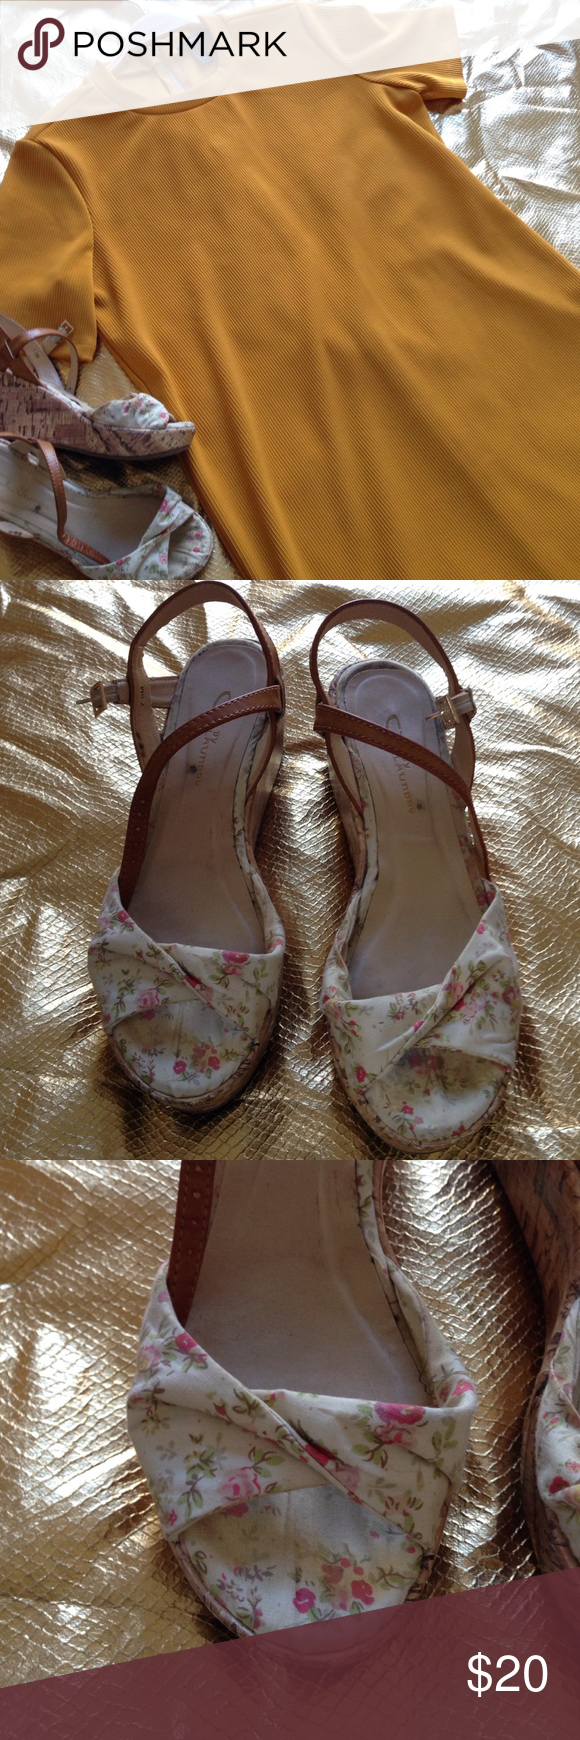 Chinese Laundry 7 Floral Wedges Worn several times but outgrew them. Chinese Laundry Shoes Wedges